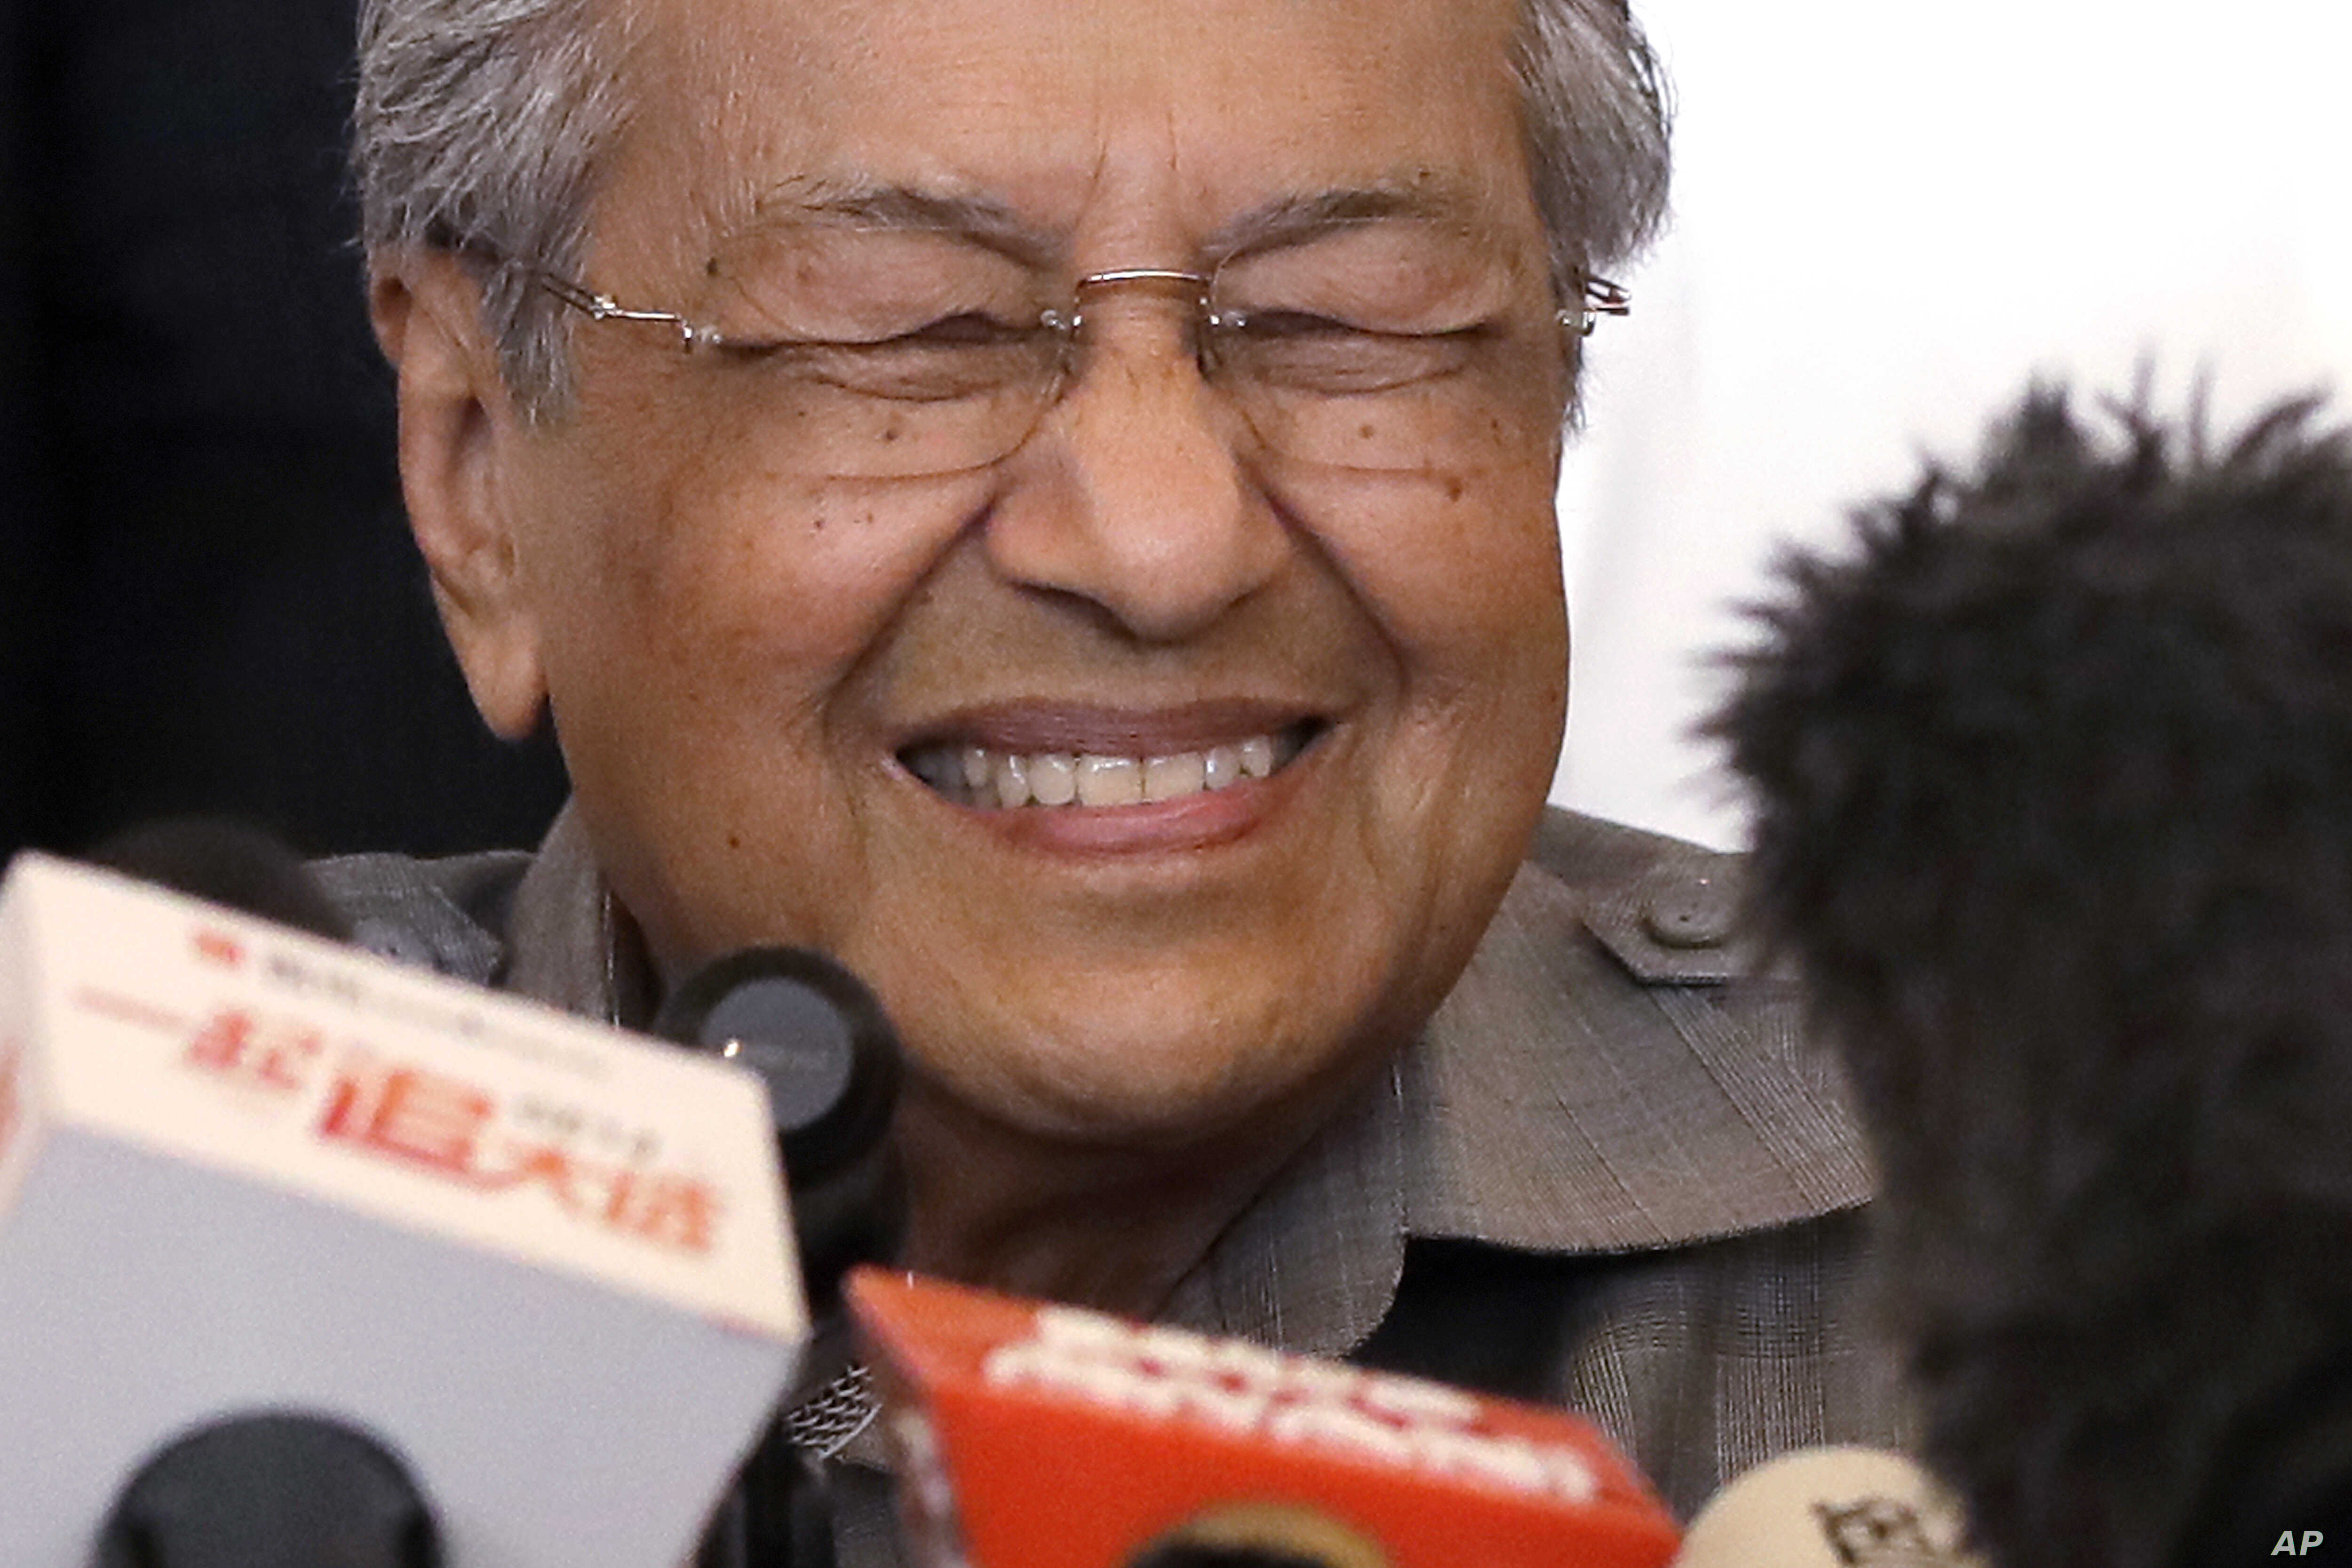 Mahathir Mohamad reacts as he speaks during a press conference at a hotel in Kuala Lumpur, Malaysia, May 10, 2018.